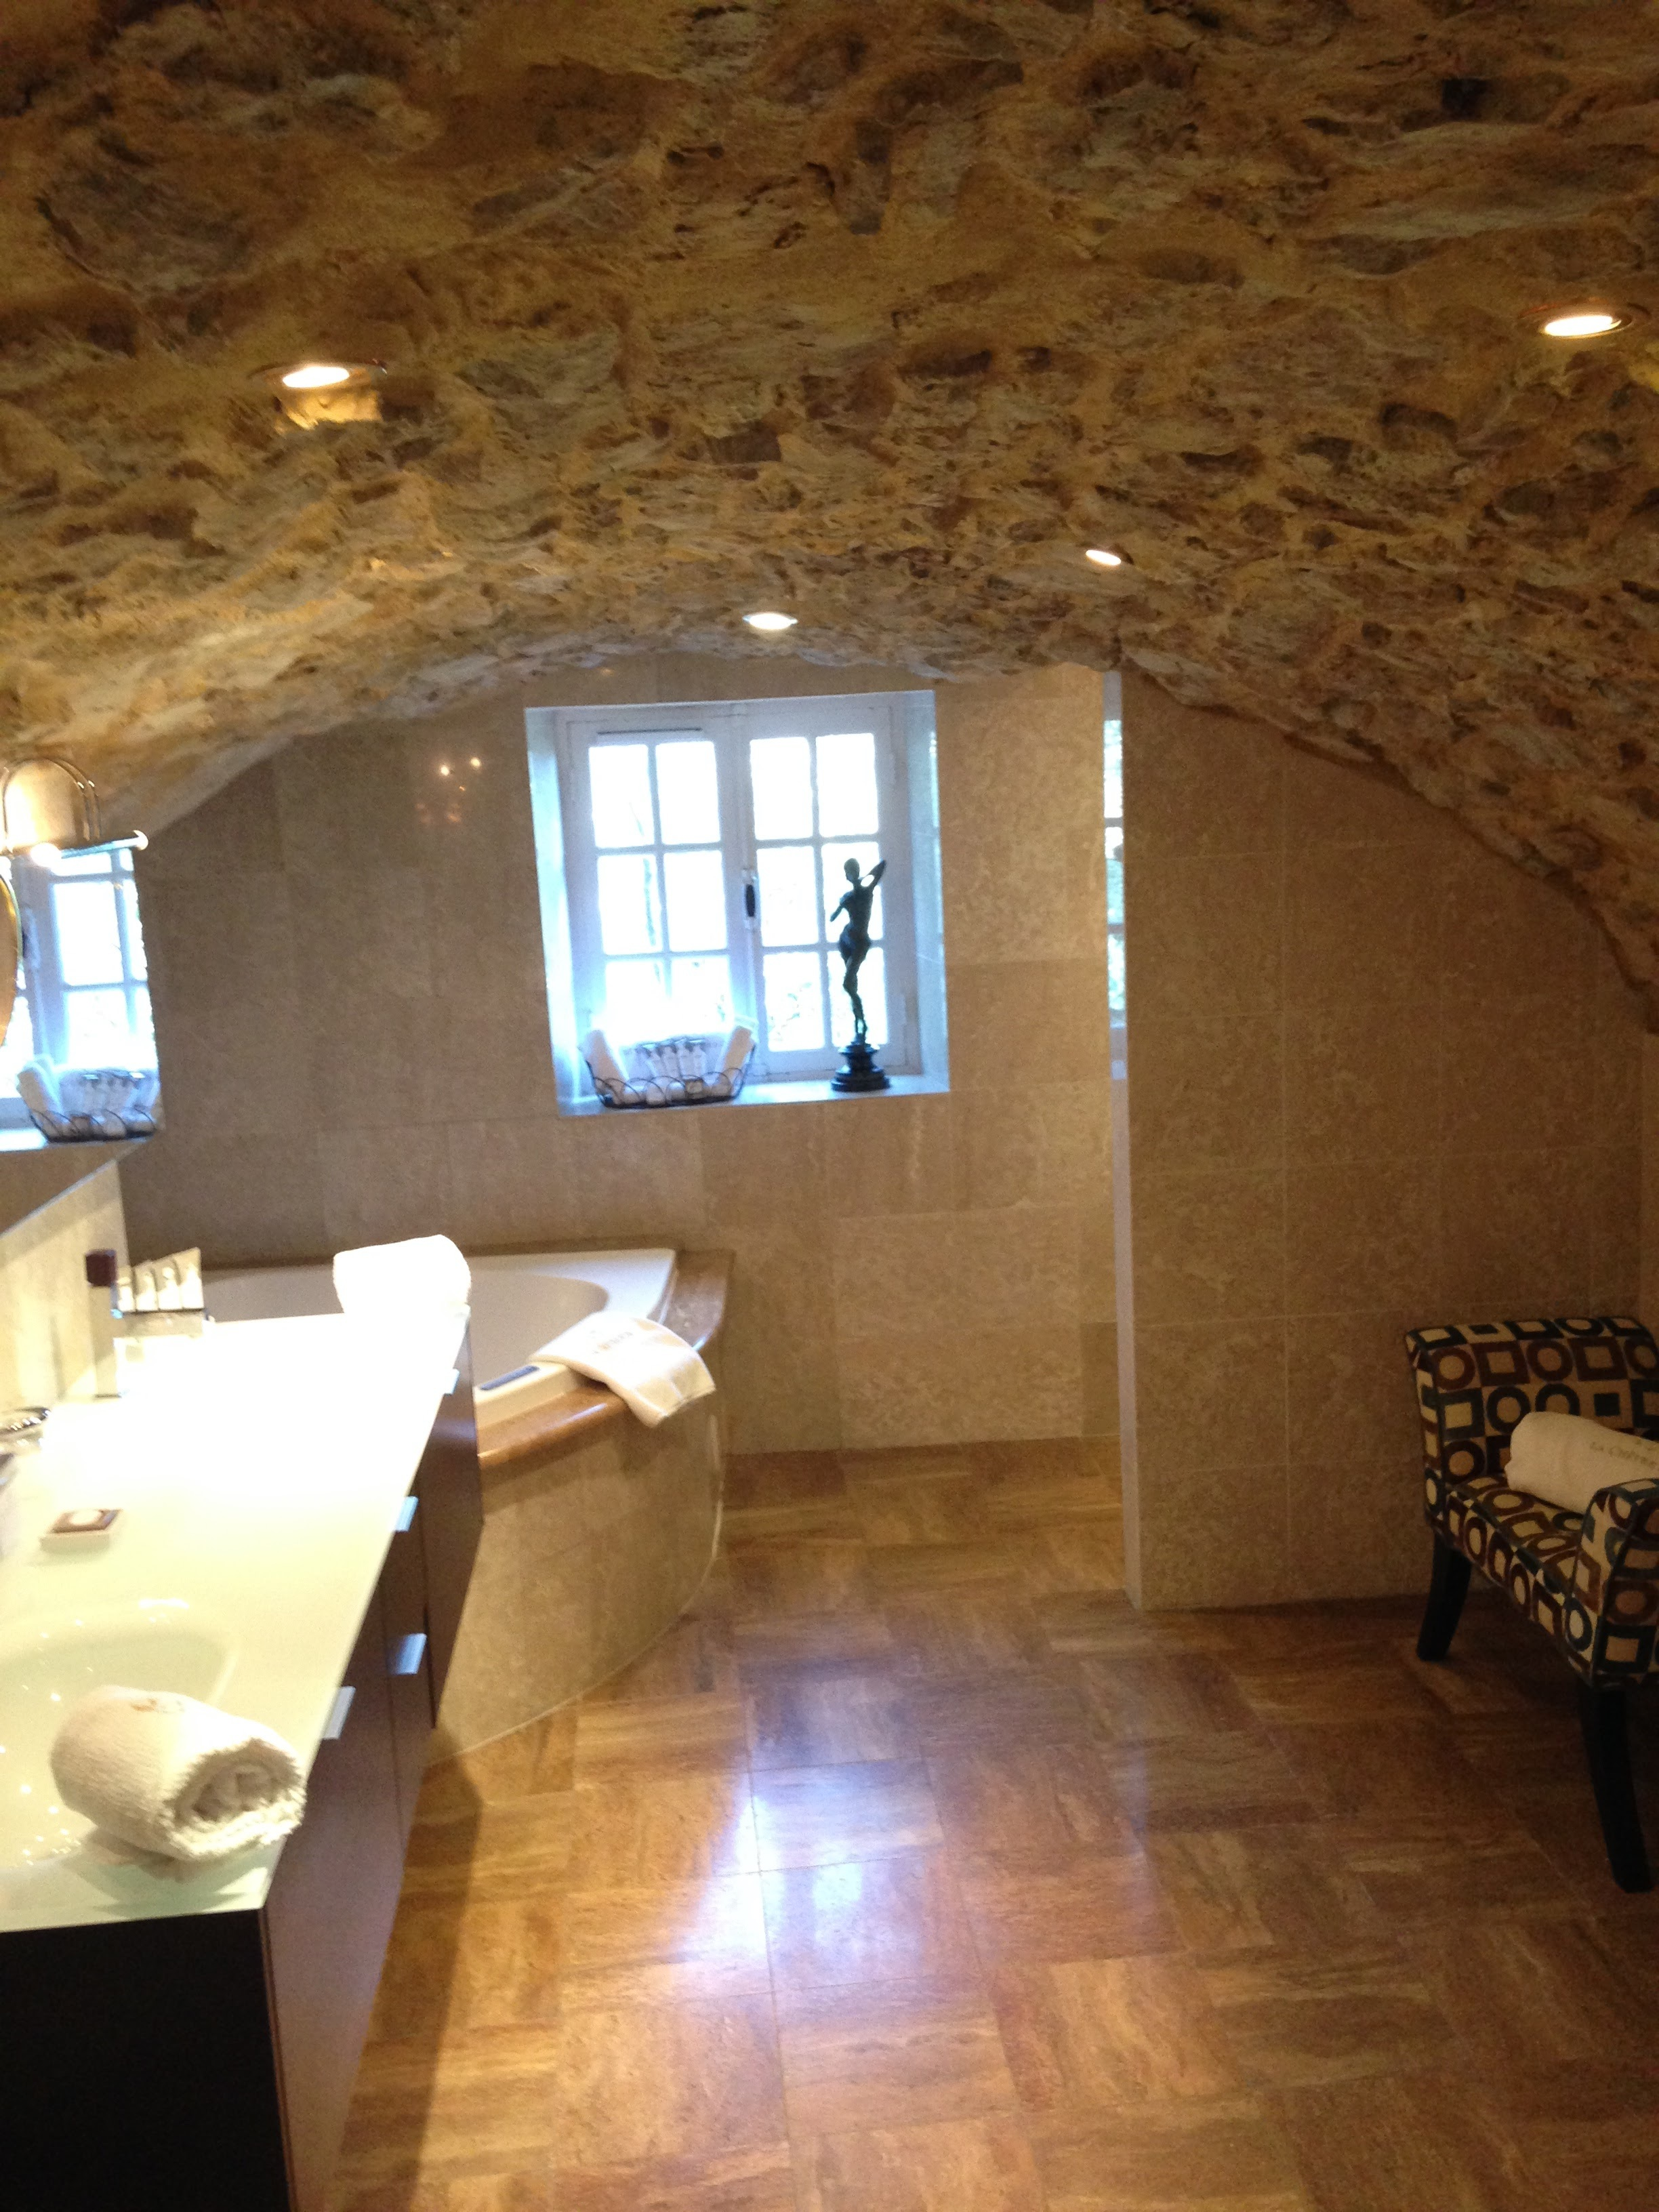 Huge bathroom in a cave